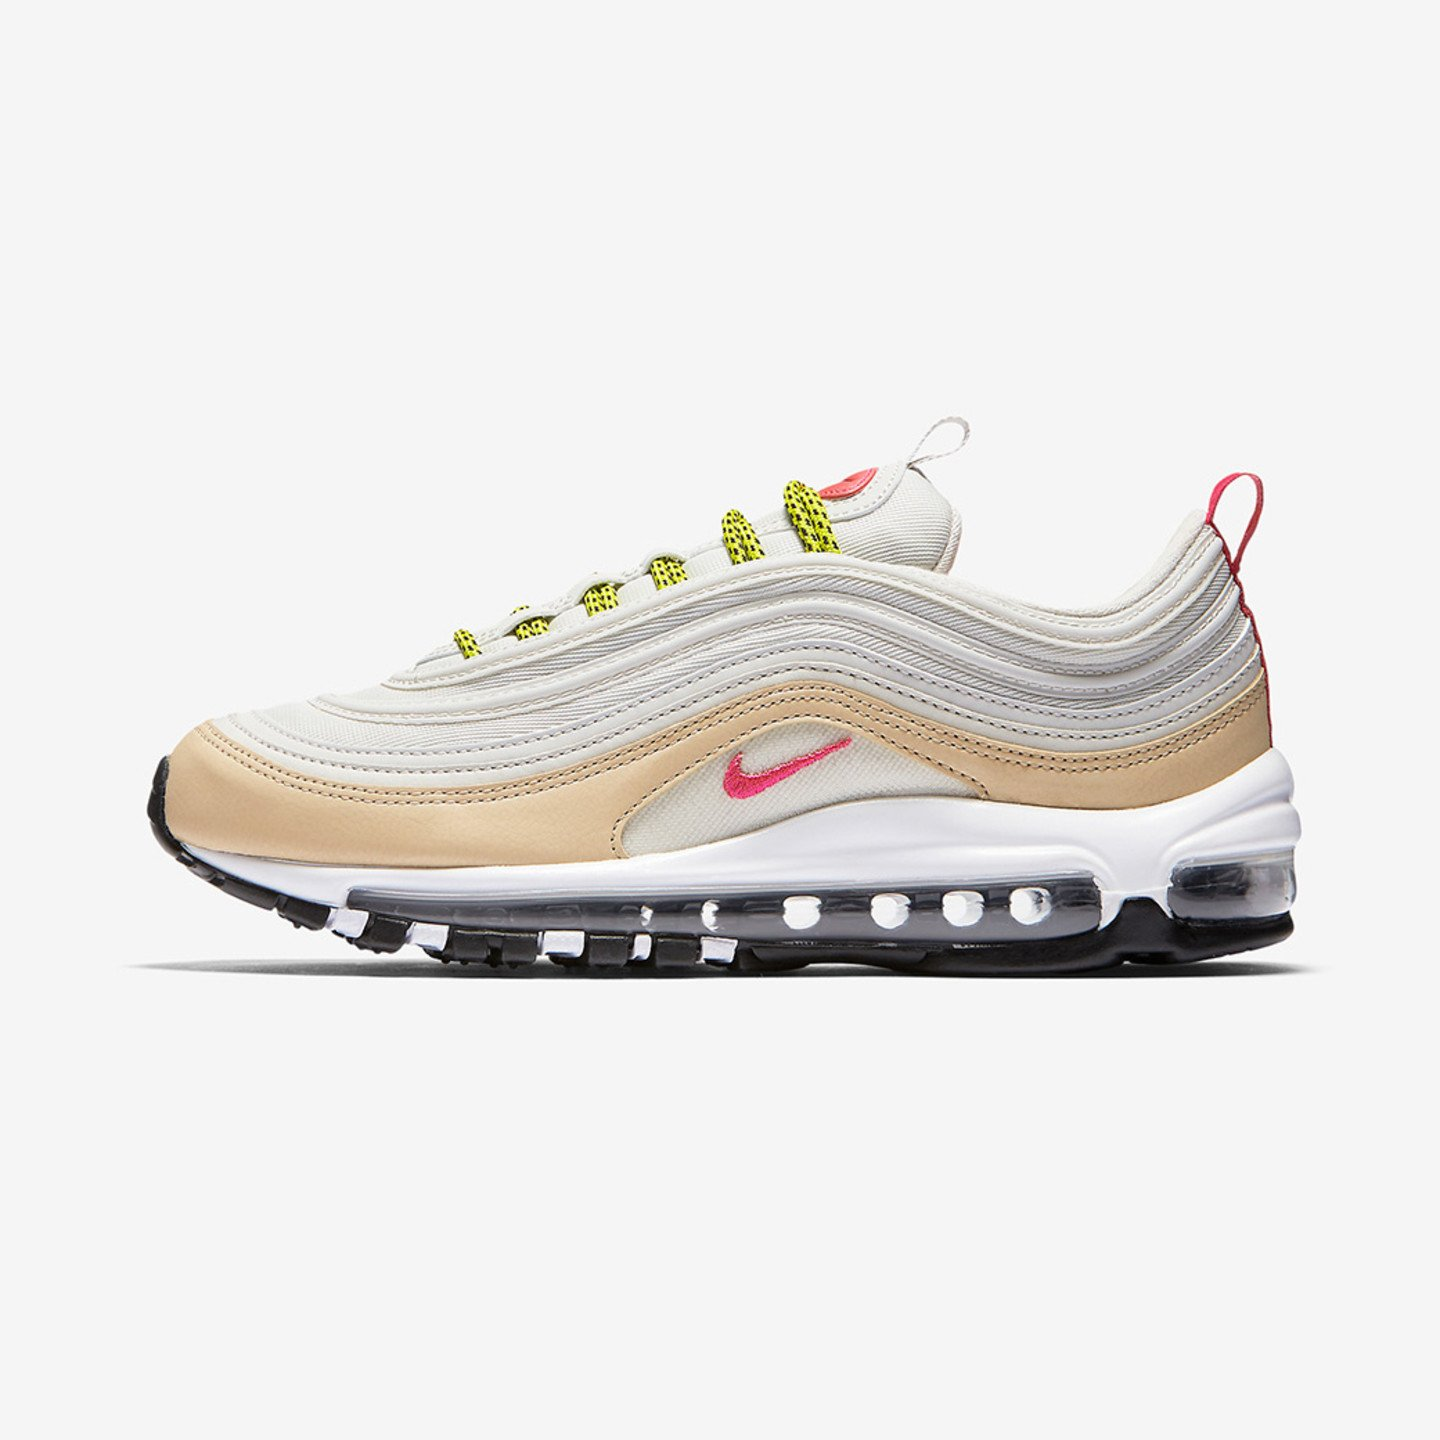 Nike Wmns Air Max 97 Light Bone / Mushroom / Bright Cactus / Deadly Pink 921733-004